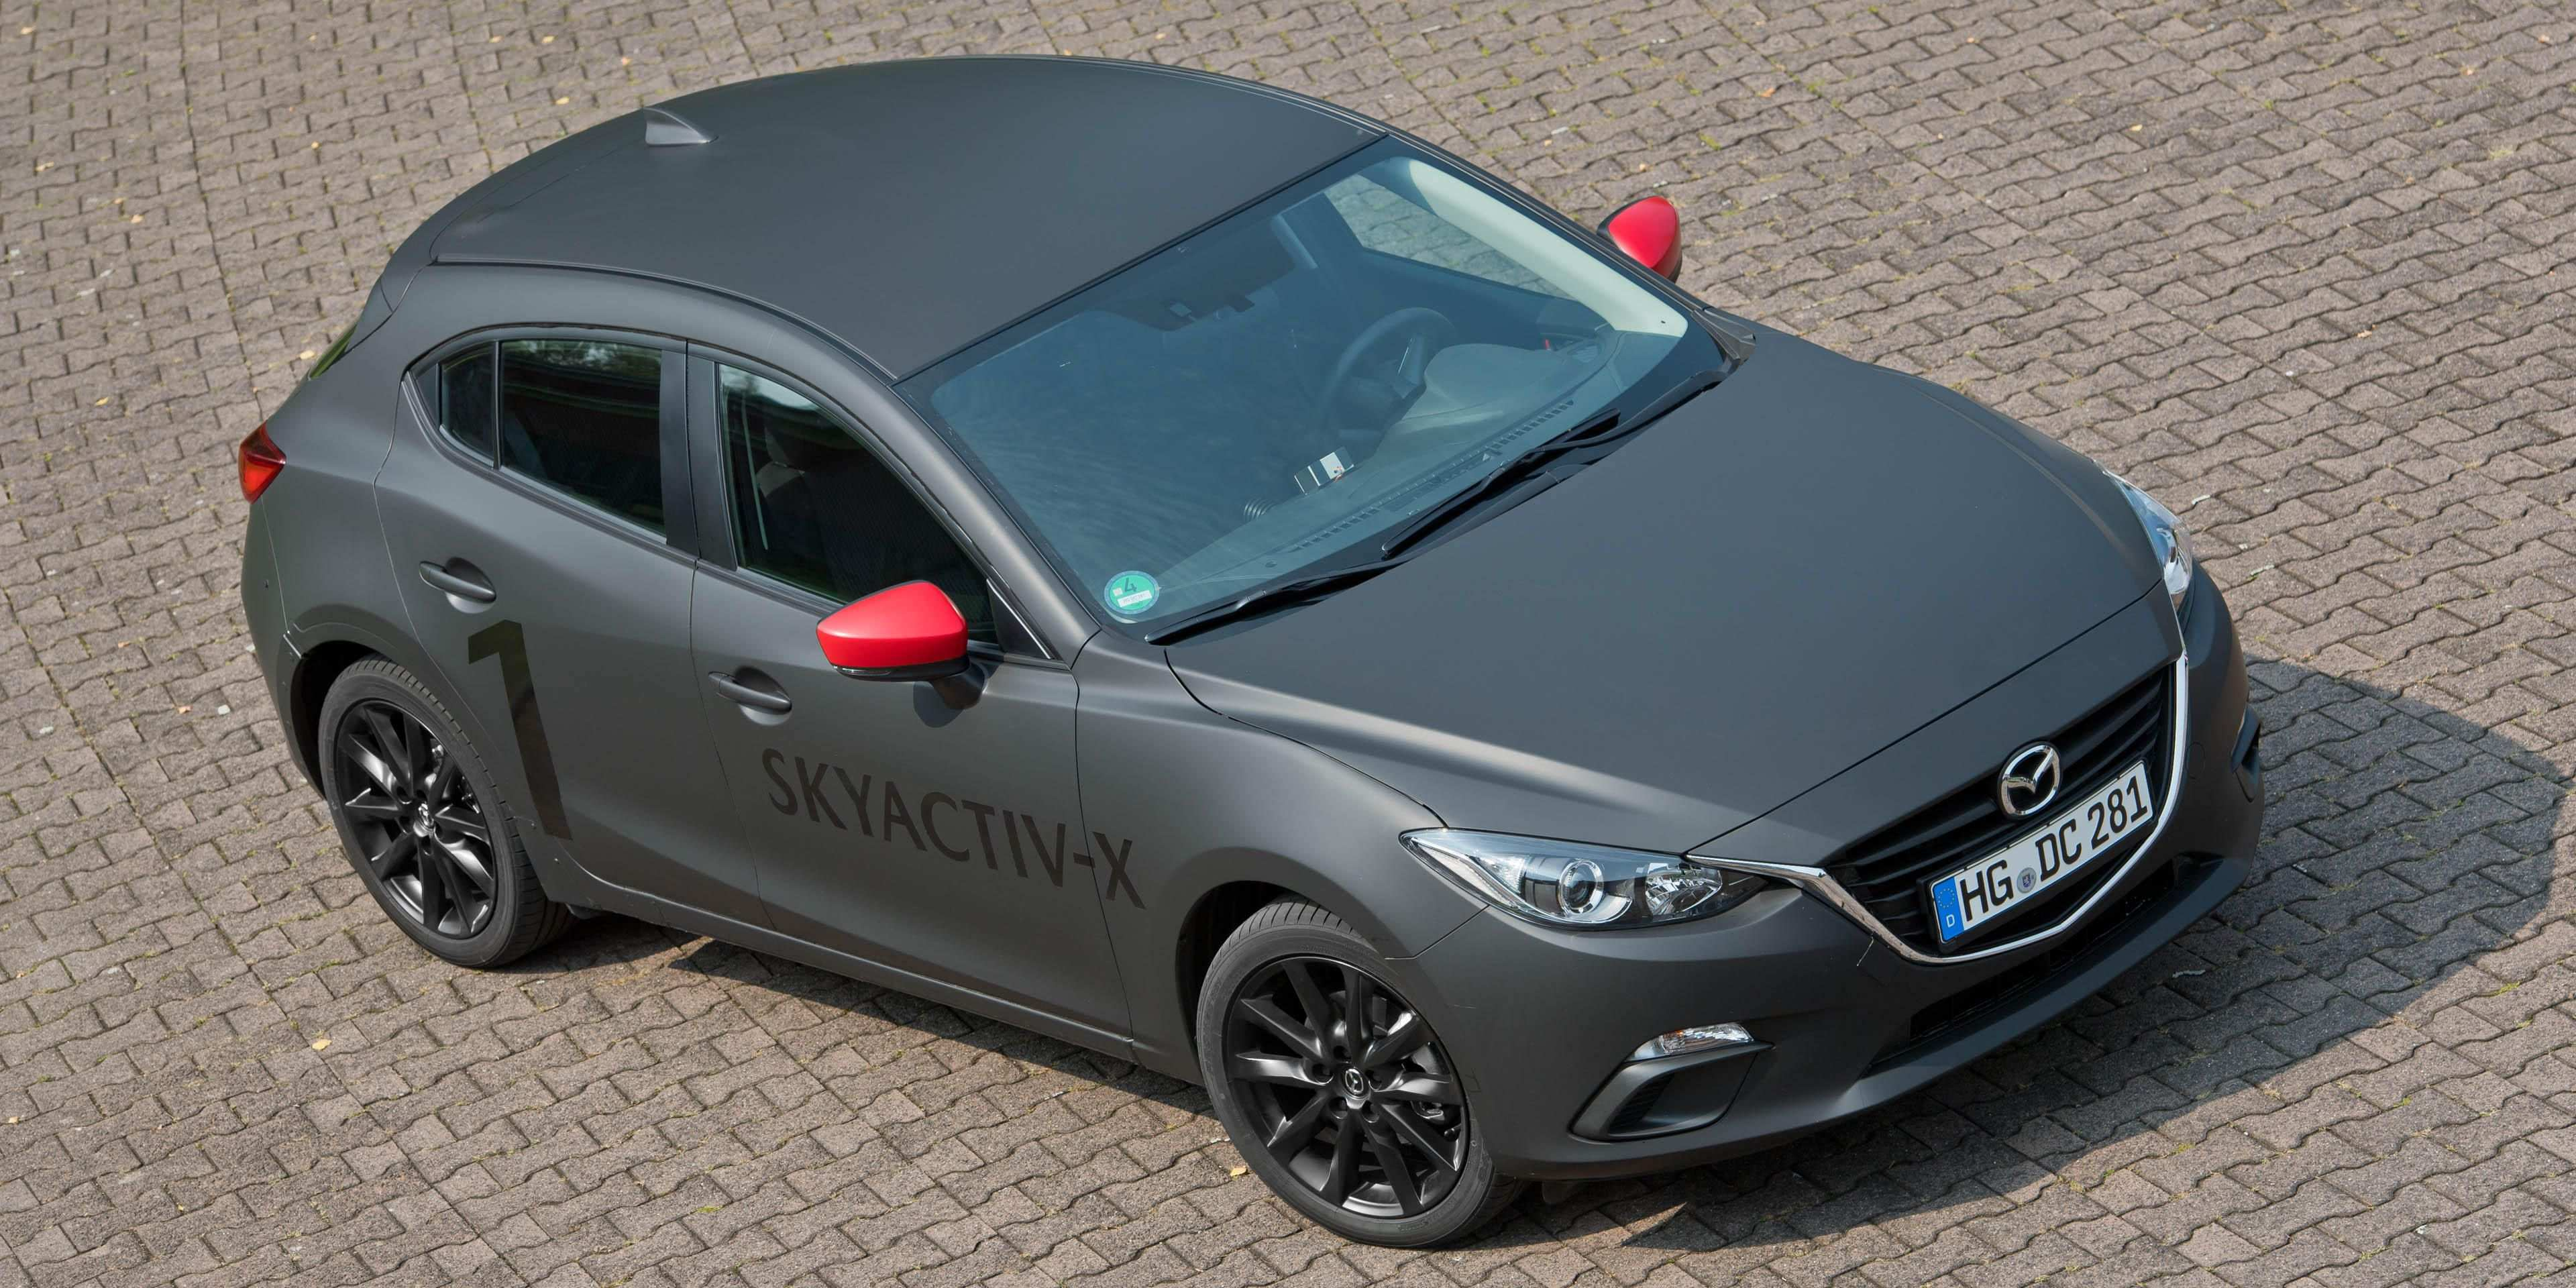 32 Best Review 2020 Mazda 6 Hatchback Photos with 2020 Mazda 6 Hatchback